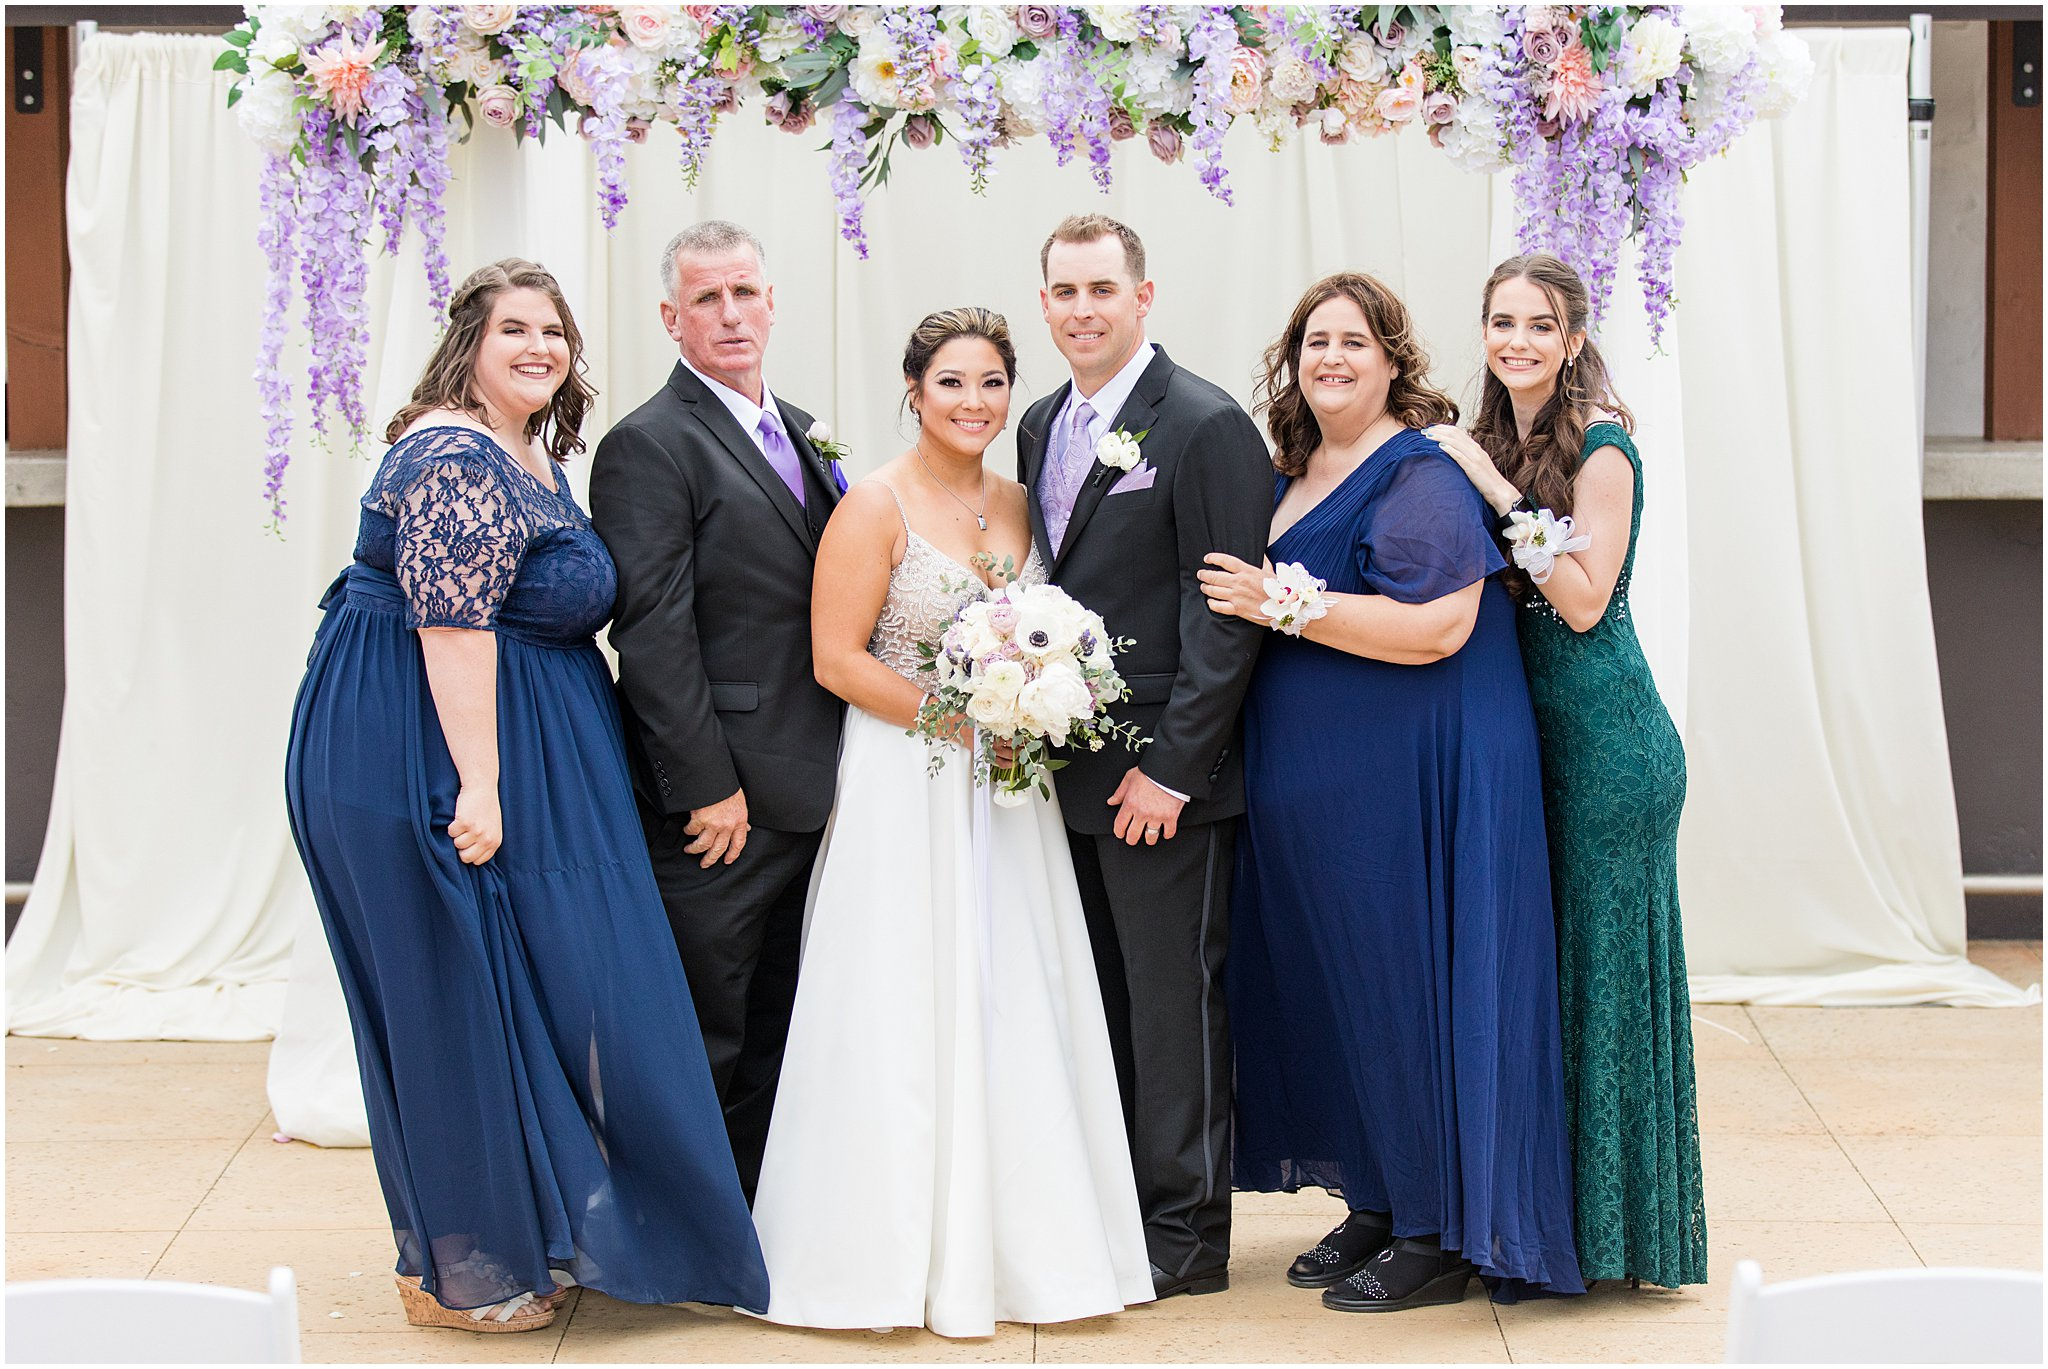 2019 wedding san juan bautista hacienda de leal vineyards bay area wedding photographer_0055.jpg